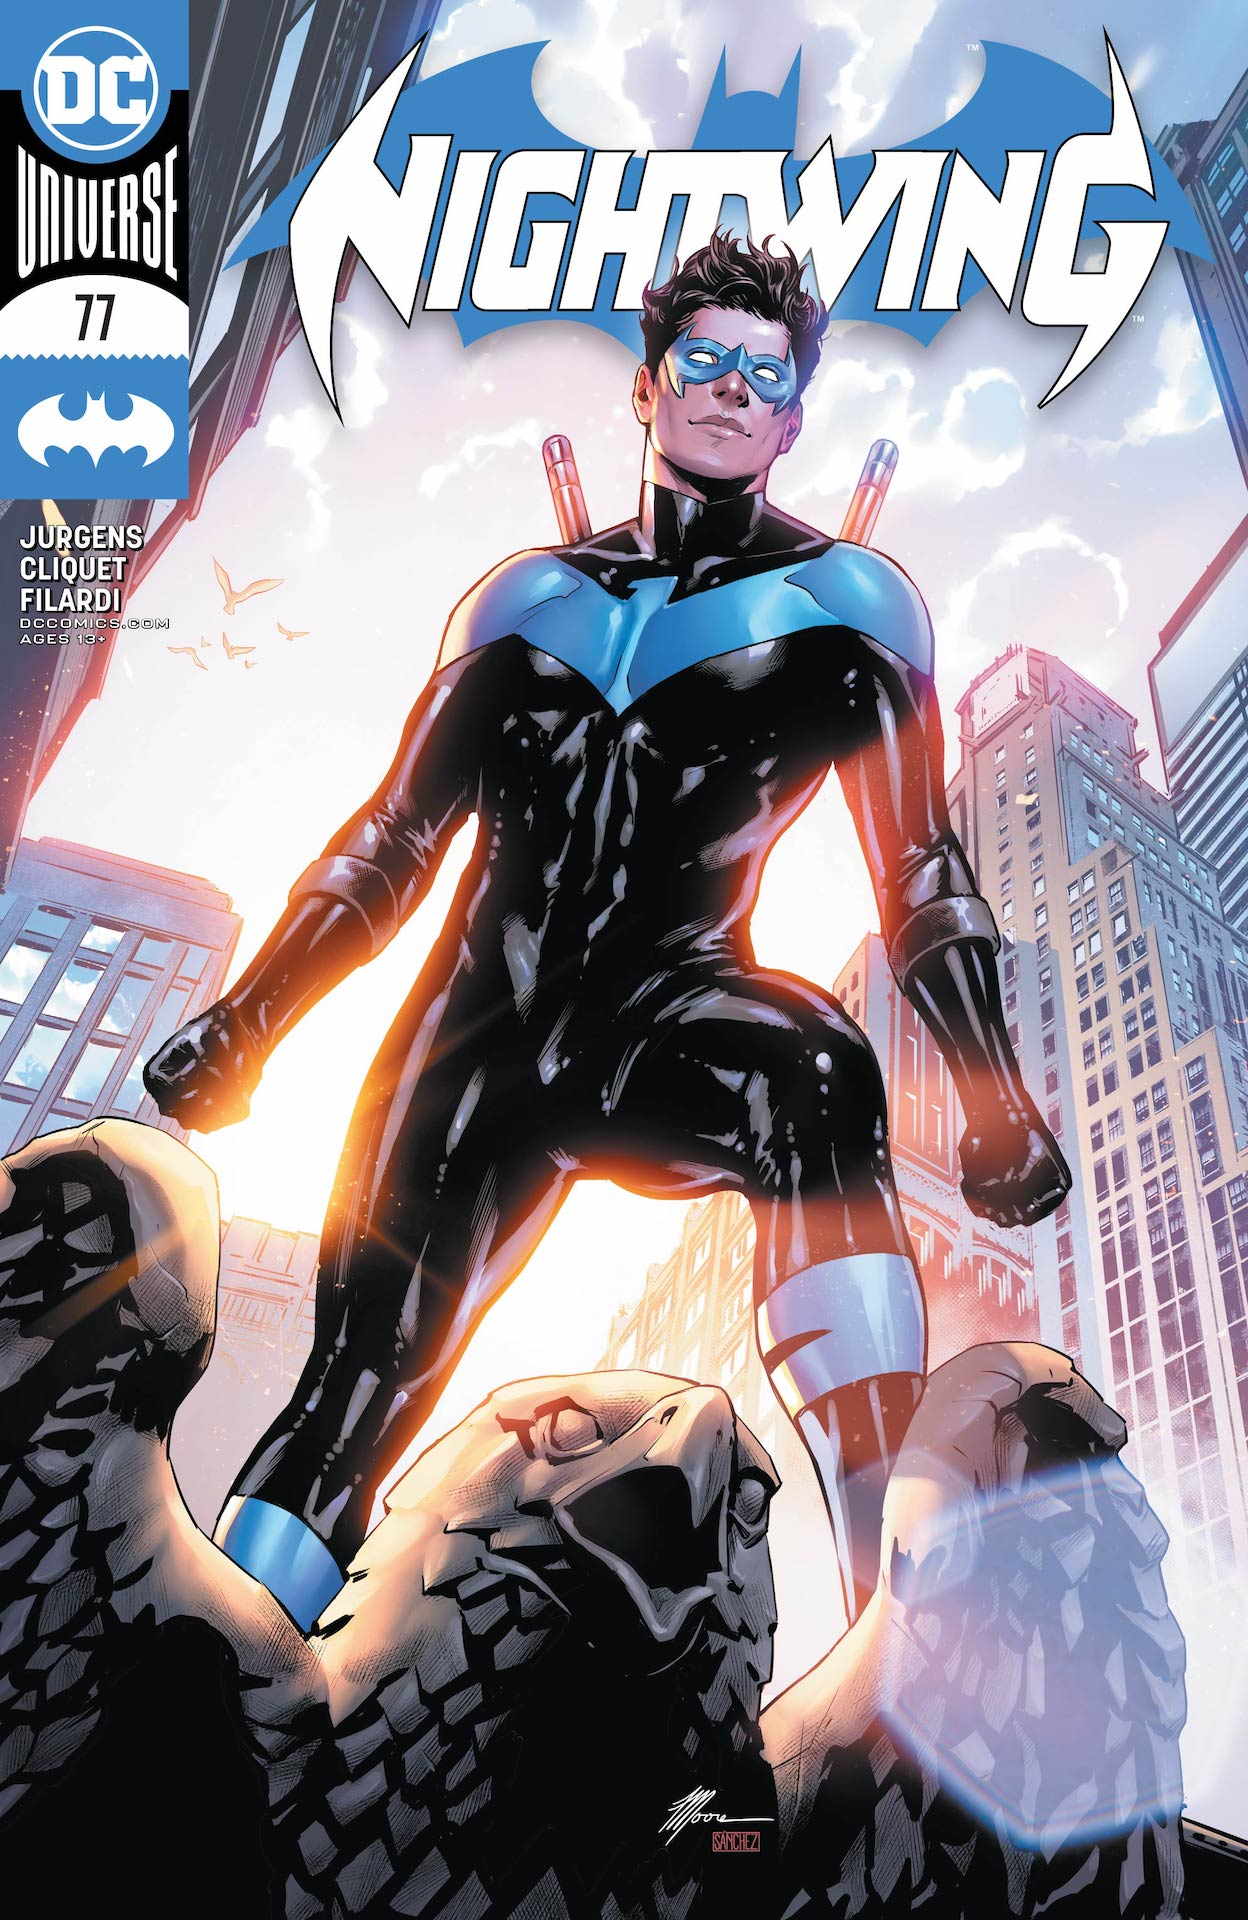 DC Preview: Nightwing #77